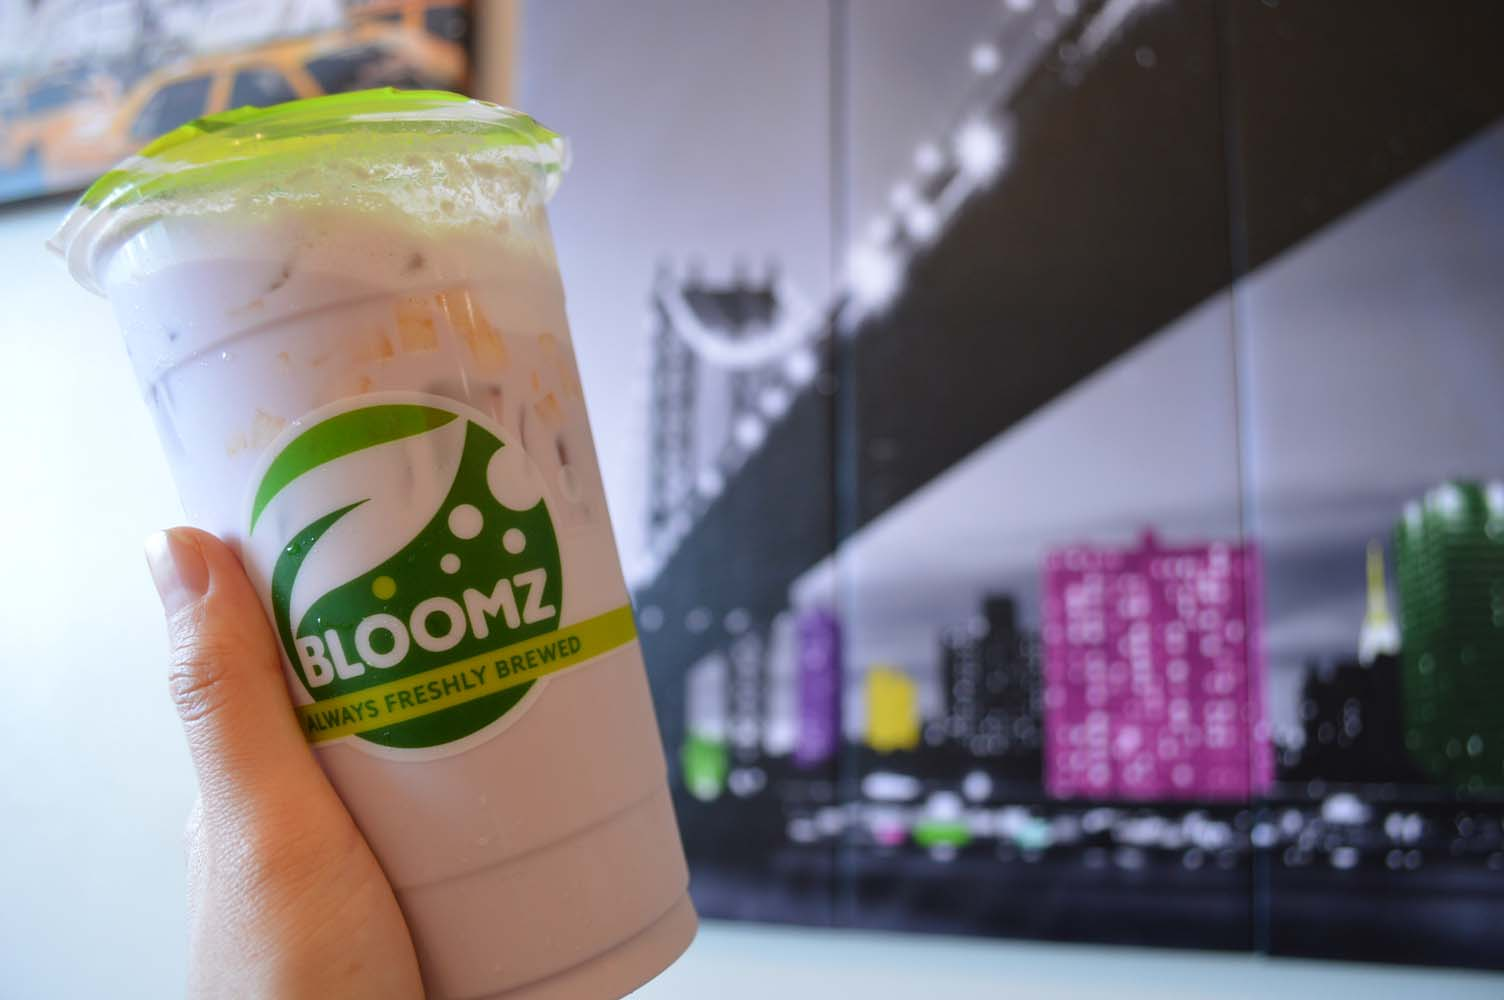 IT'S ALWAYS BREWED FRESH HERE @ BLOOMZ TEA - WESTMINSTER